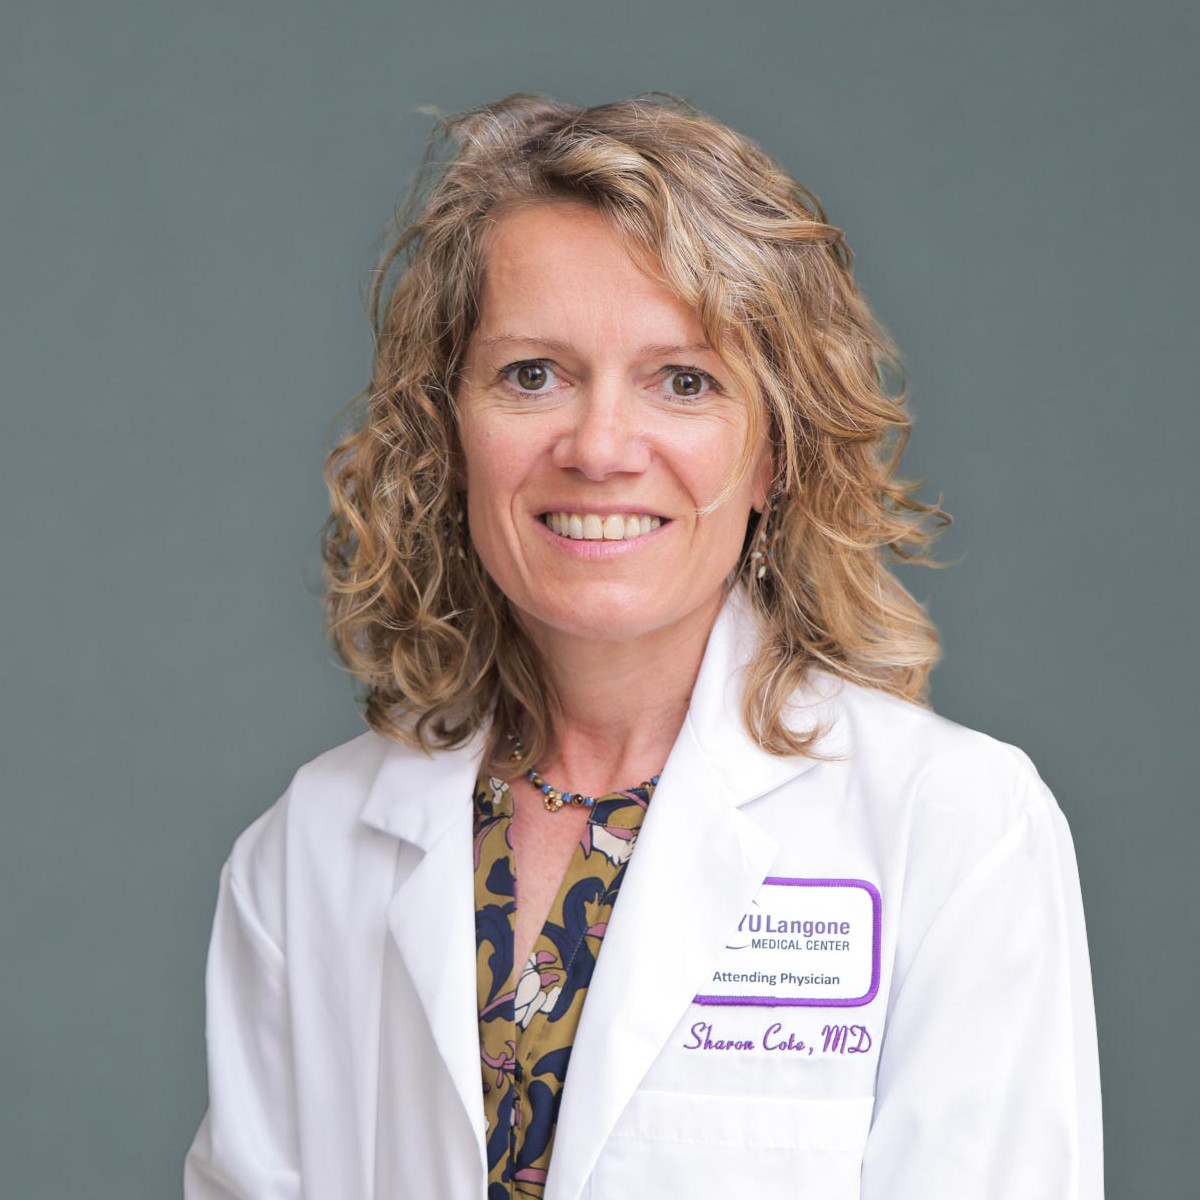 Sharon C. Cote,MD. Obstetrics, Gynecology